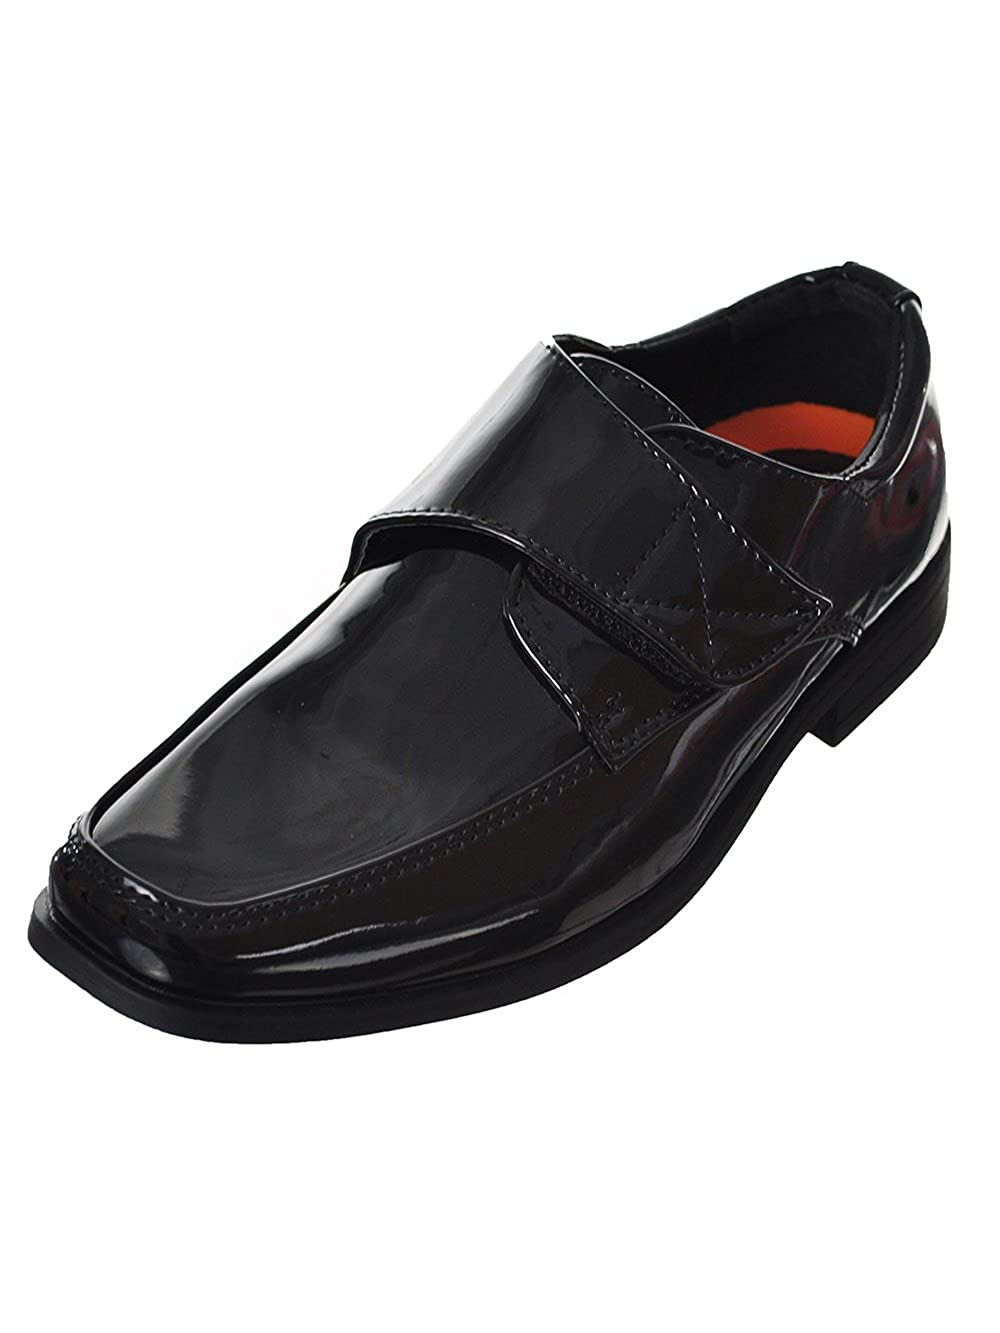 Jodano Collection Boys Dress Shoes